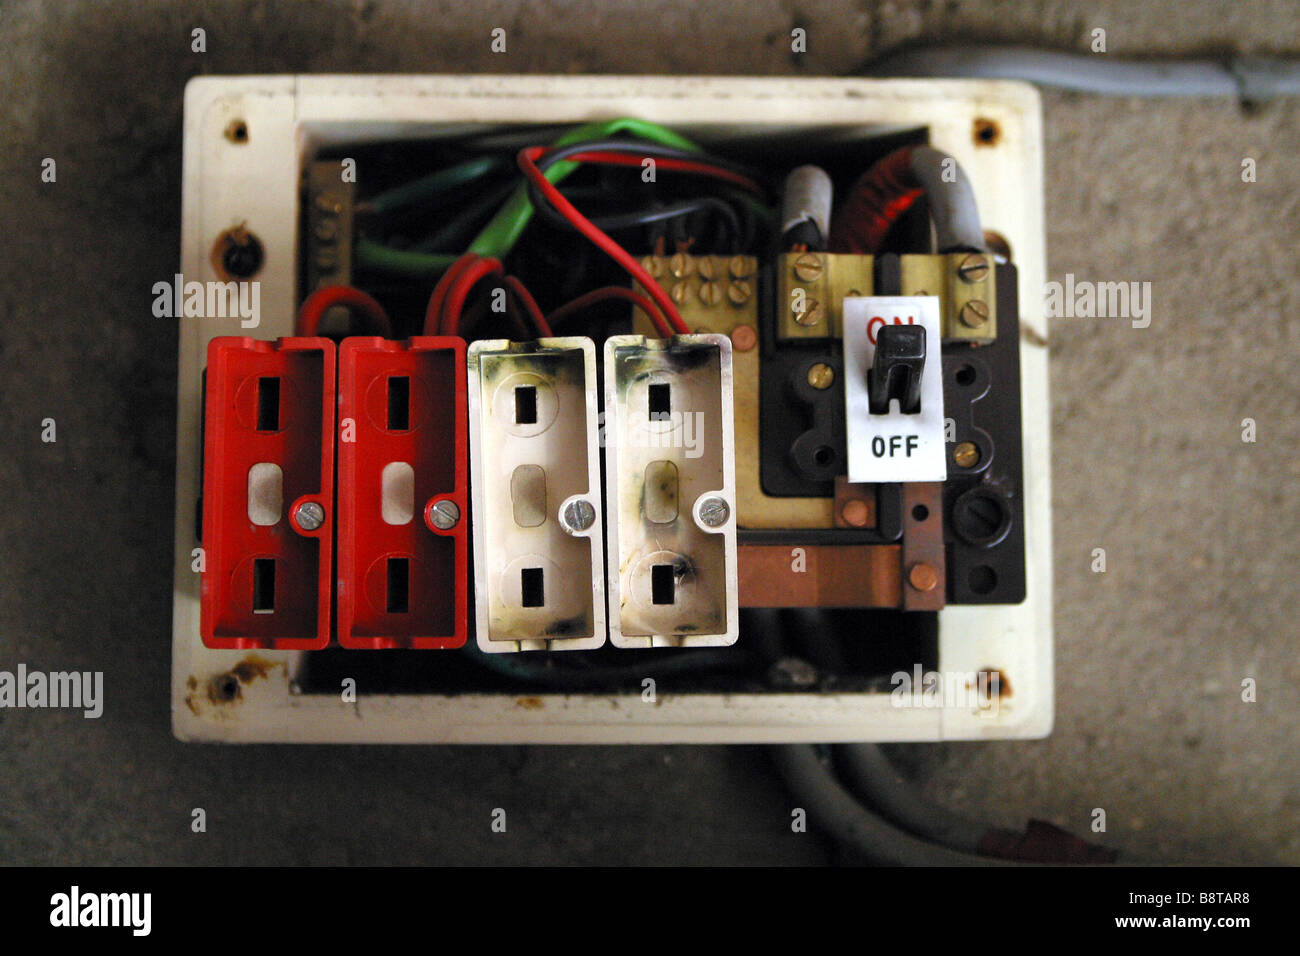 09EB Wylex Fuse Box Not Working | Wiring Resources | Wylex Fuse Box Manual |  | Wiring Resources